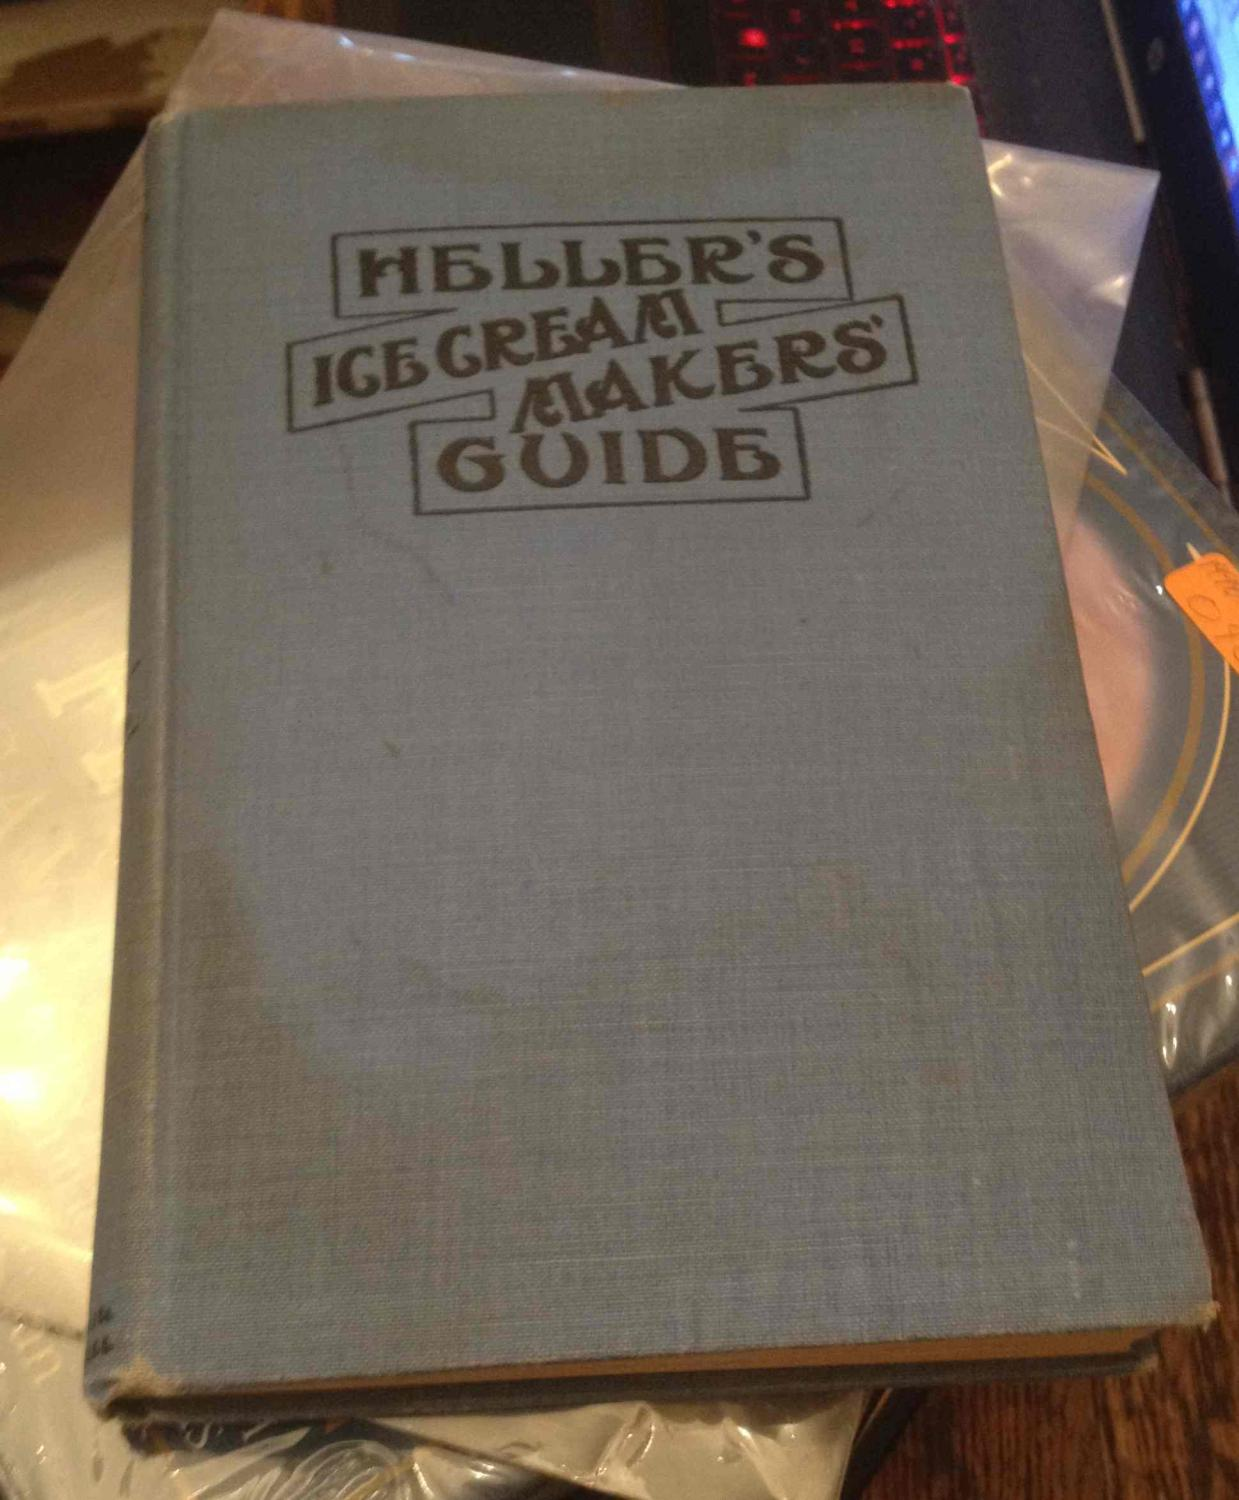 Heller's Ice Cream Makers' Guide -Fifth Edition- B. Heller & Co. [Satisfaisant] [Couverture rigide] 132pp.incl.adverts; HB blue w/blk.; rubbed w/dampstain&ripple,bttm.edge; dampstain,tp.edge; wear on edges&corners w/spine stained; some lt.ripple,bttm.edge; some lt.tan w/clean,tight pgs.  This, our fifth and most complete edition of Heller's Ice Cream Makers' Guide is intended to be not only a Guide for the beginner but an every day assistant to the expert and experienced ice cream maker.  illus. Size: 8vo - over 7¾  - 9¾  tall